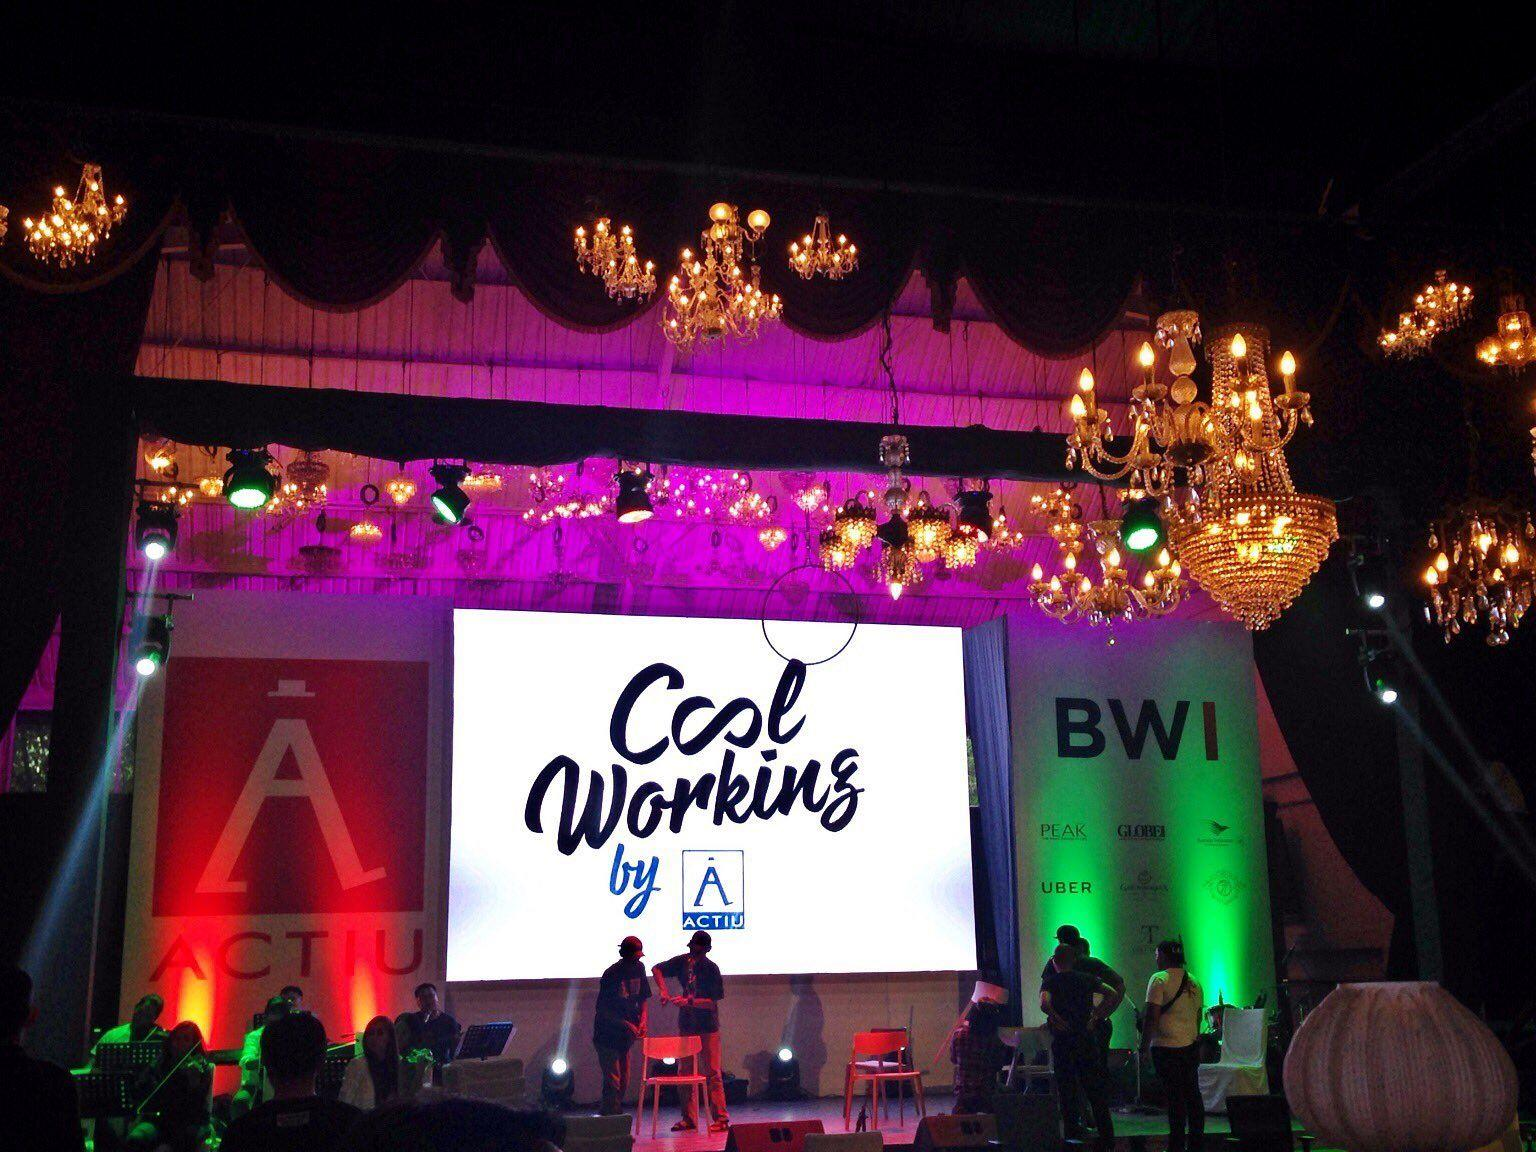 In a multitudinous event, BWI introduces the brand Actiu to the Indonesian market 10